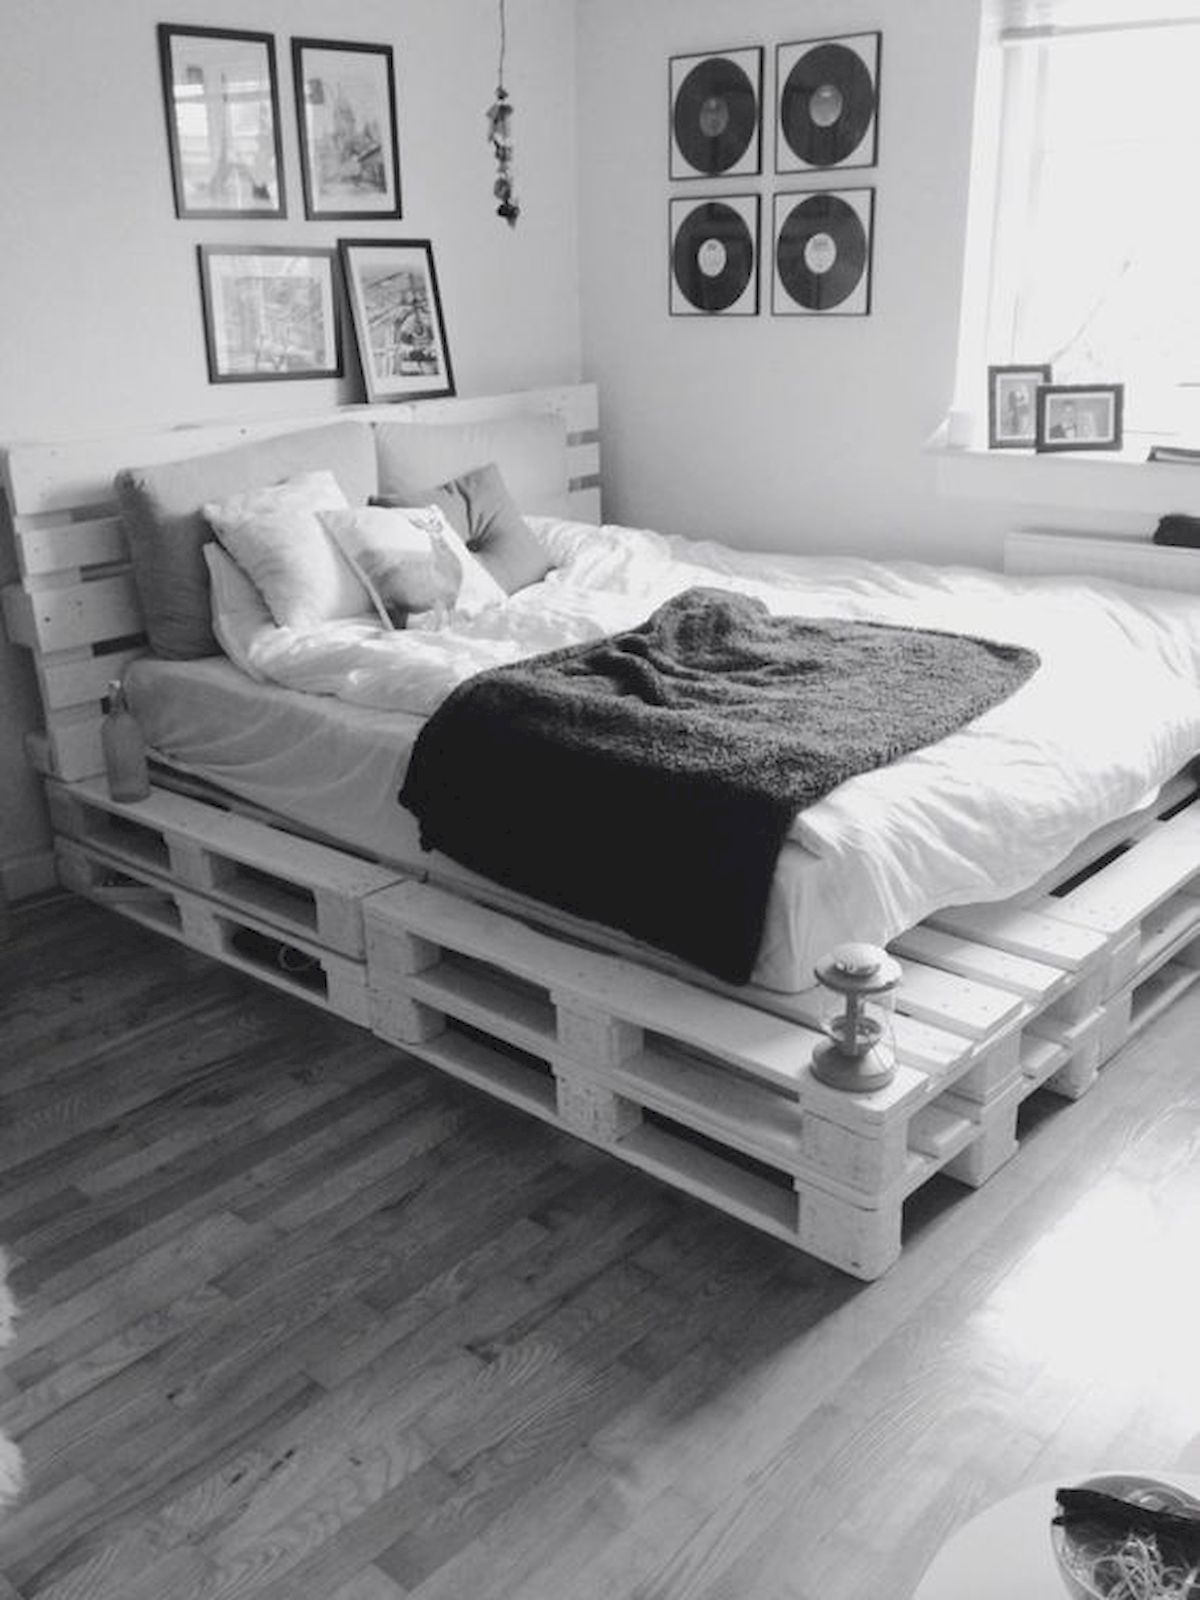 33 Ideas For Pallet Beds 33decor